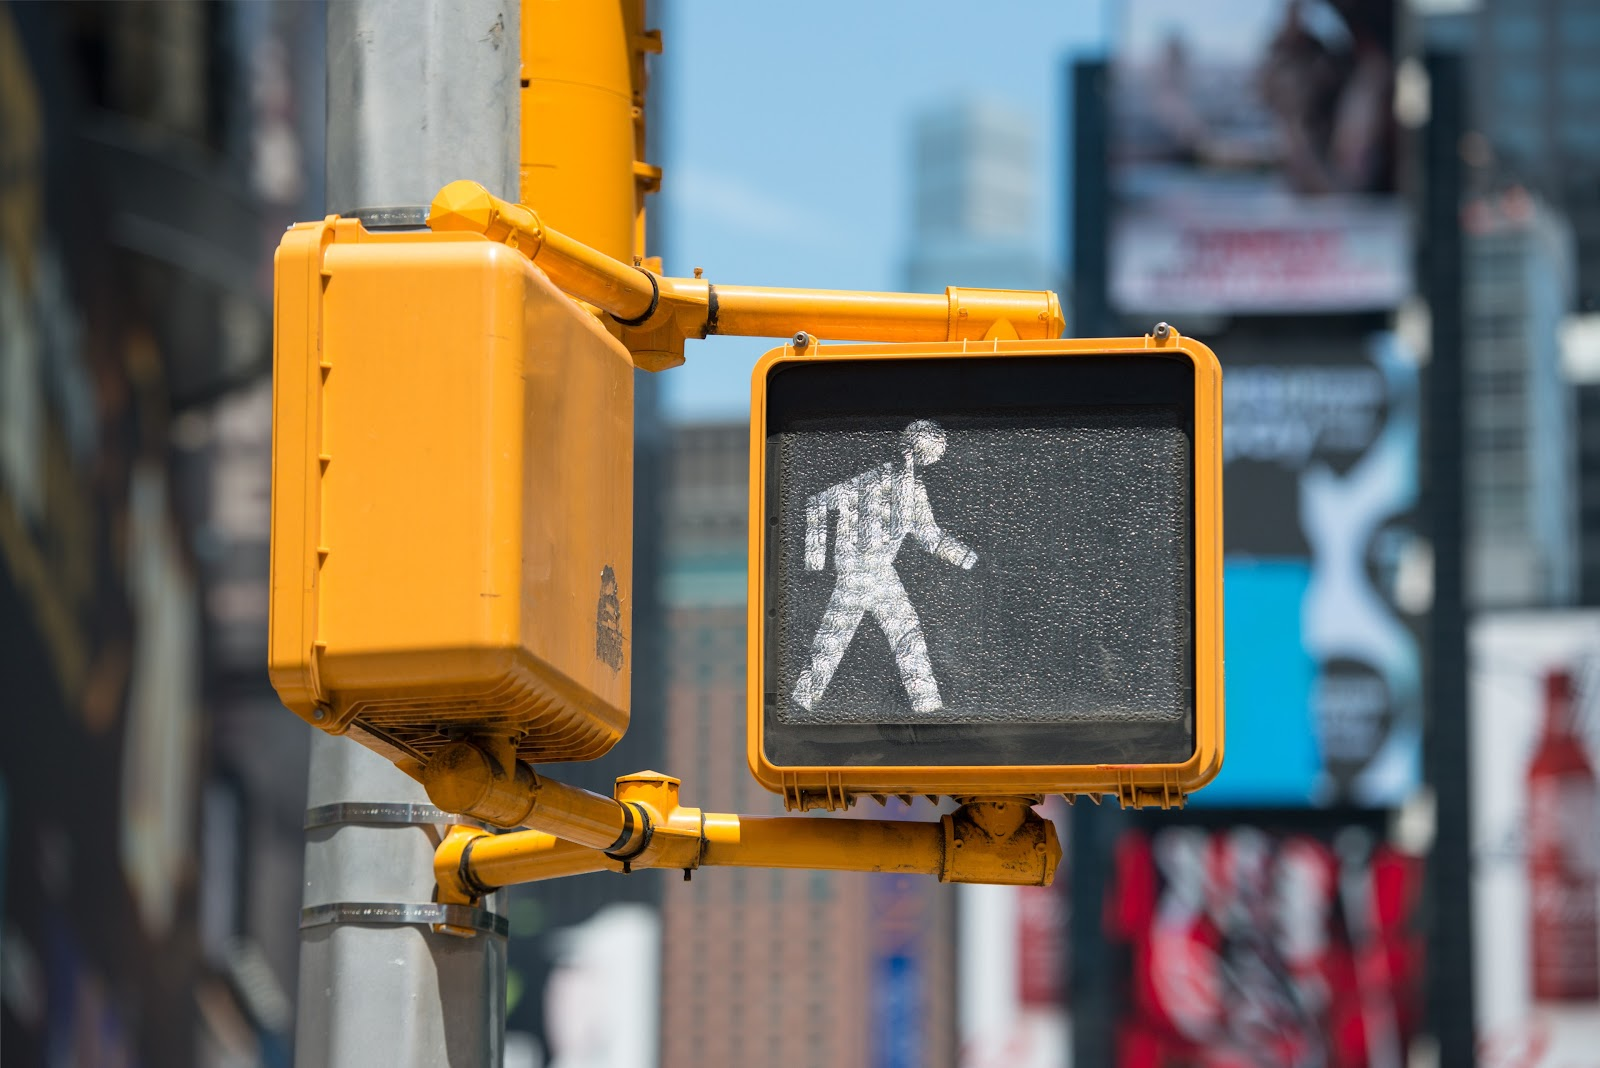 An simple and easy to understand crosswalk signal uses one icon to indicate the pedestrian has right of way.